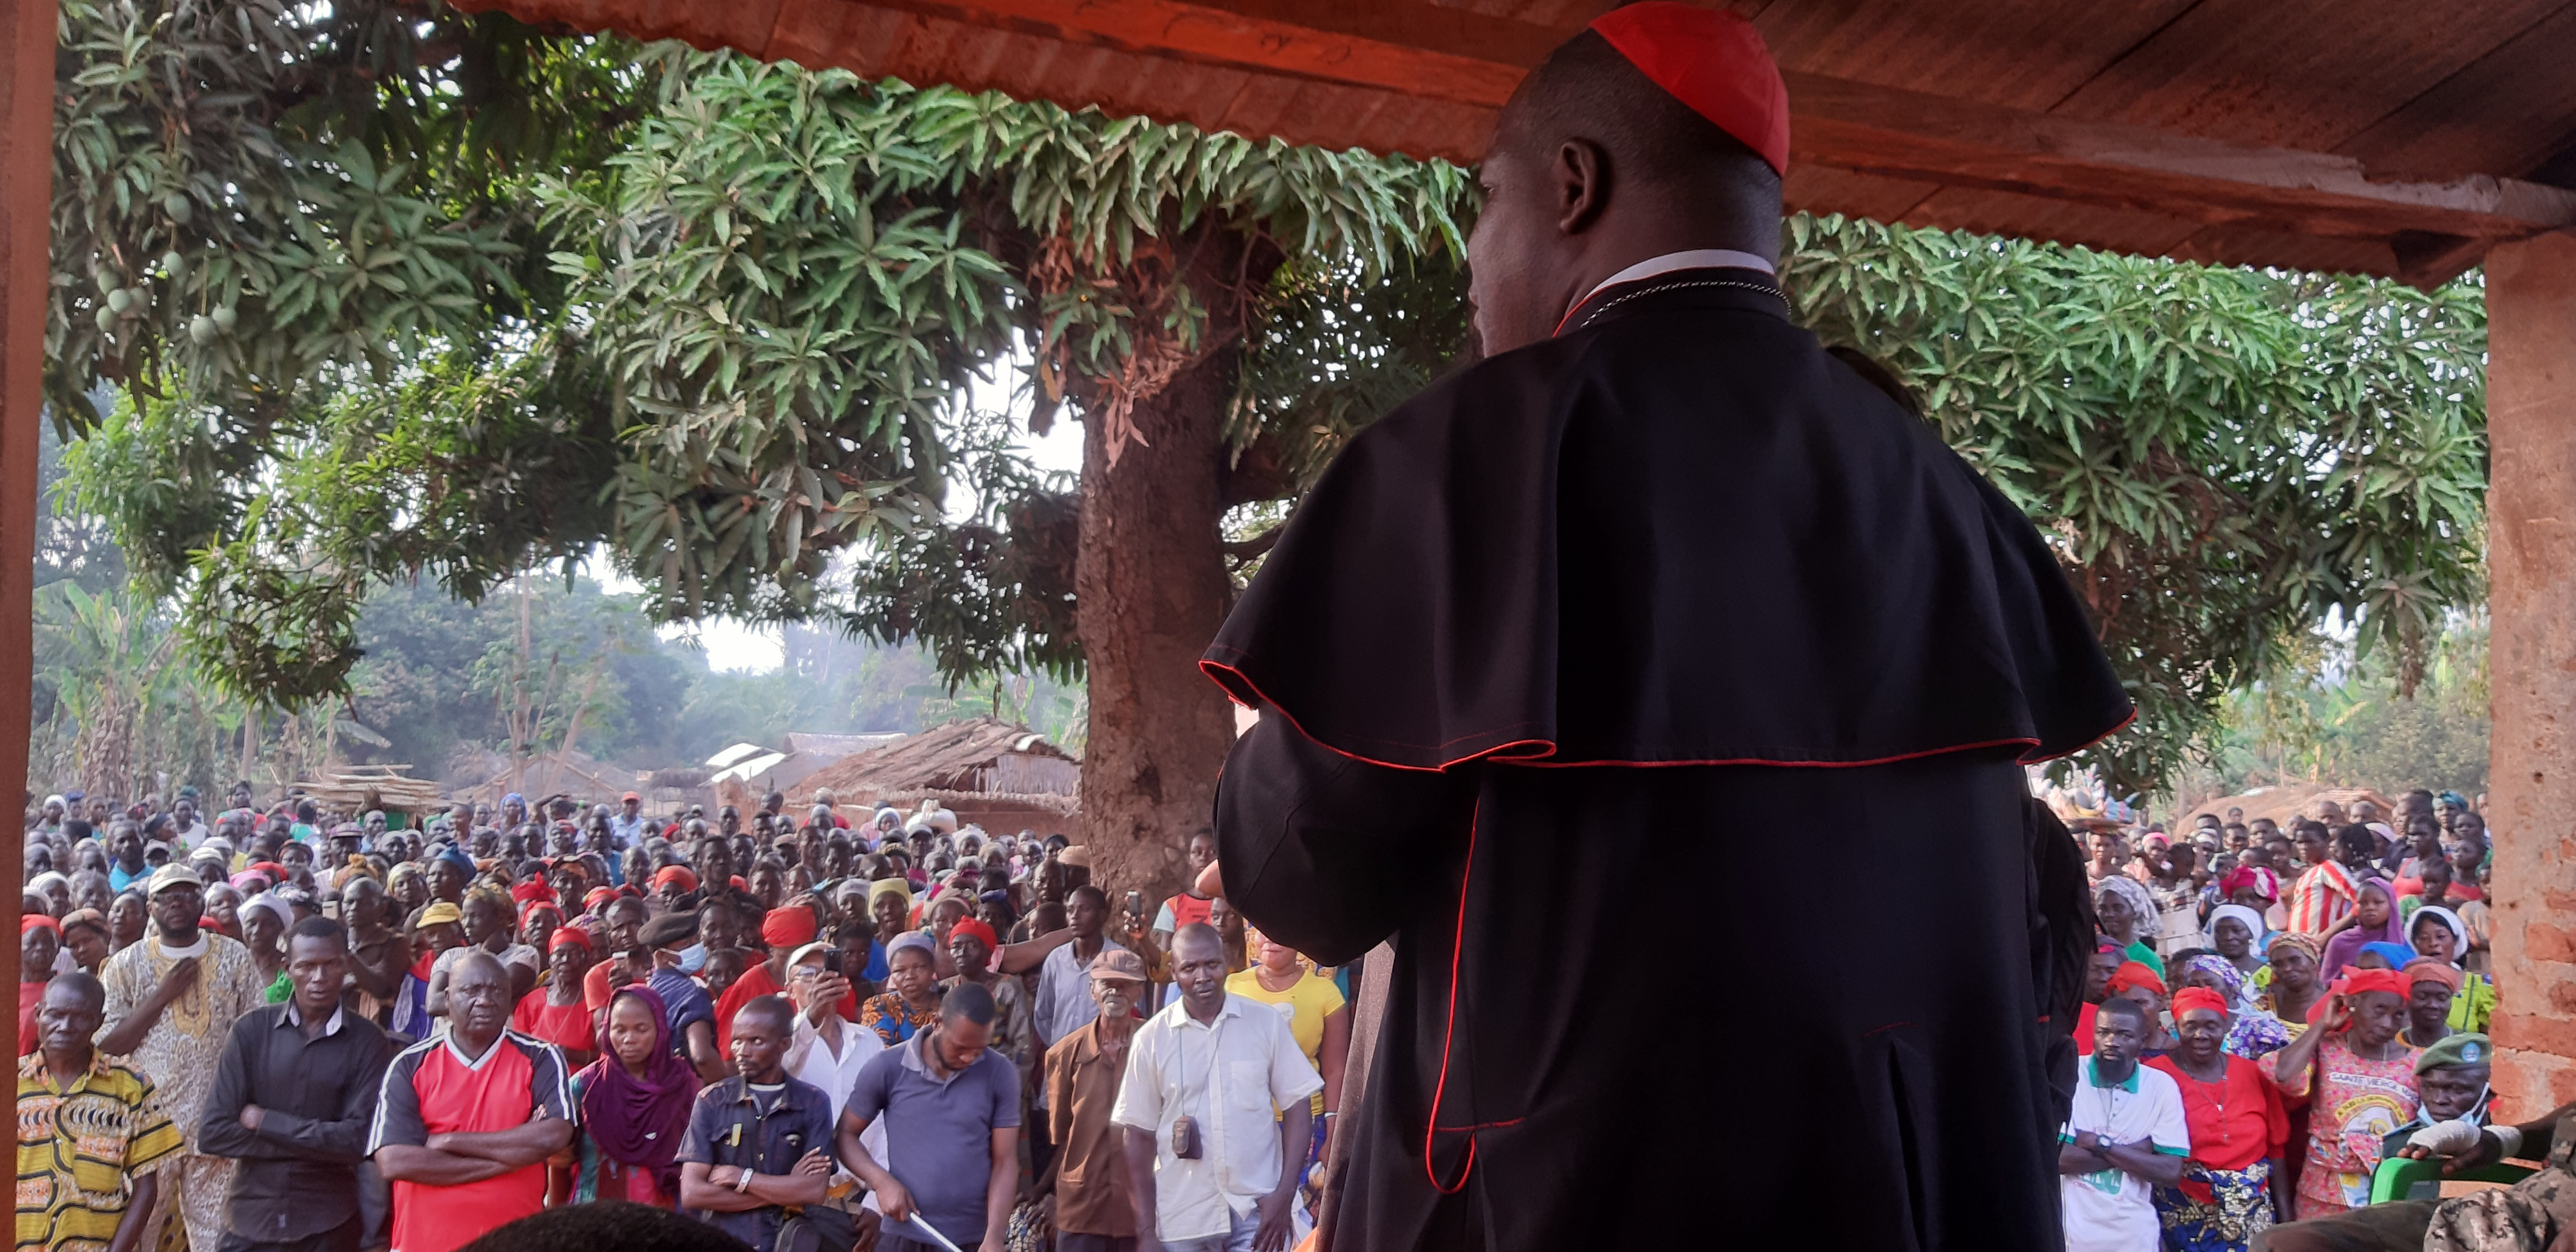 Cardinal Dieudonné Nzapalainga addresses a crowd in the Central African Republic